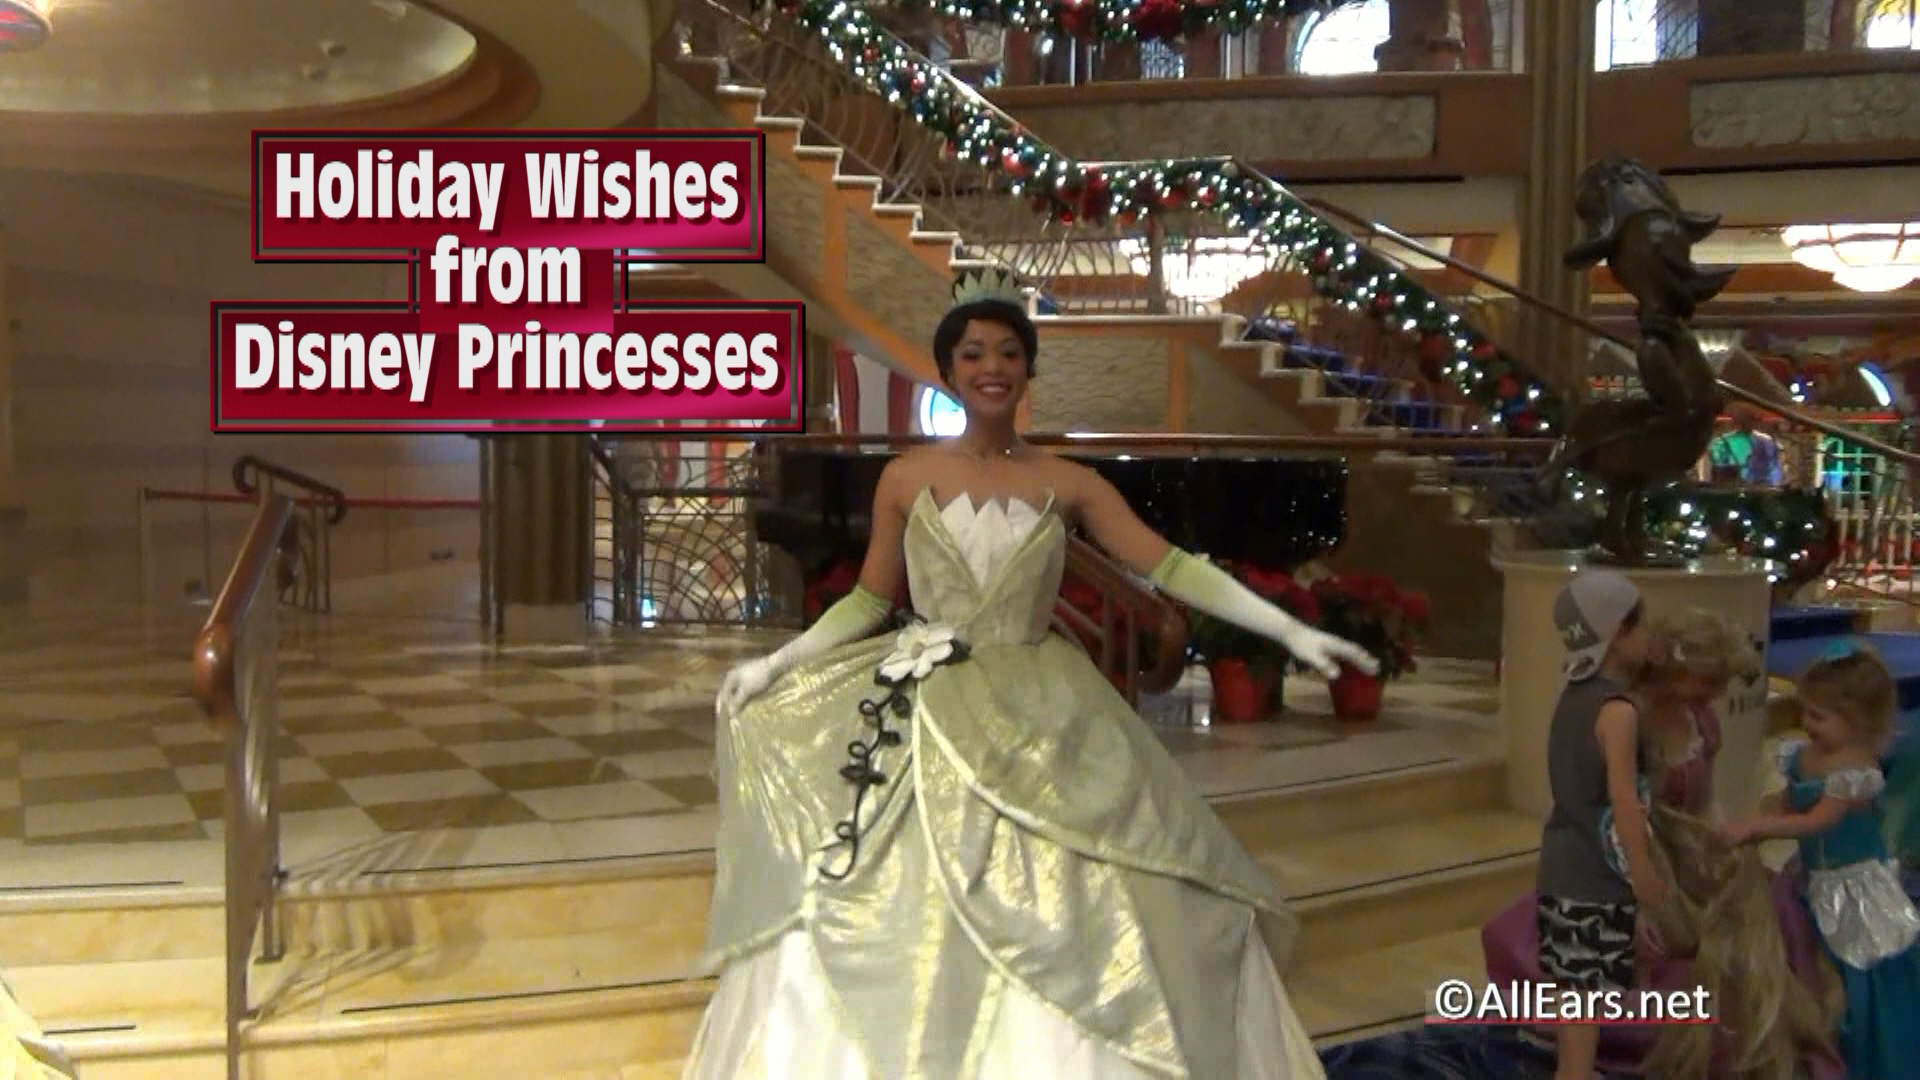 Disney Princesses Holiday Traditions and Wishes VIDEO